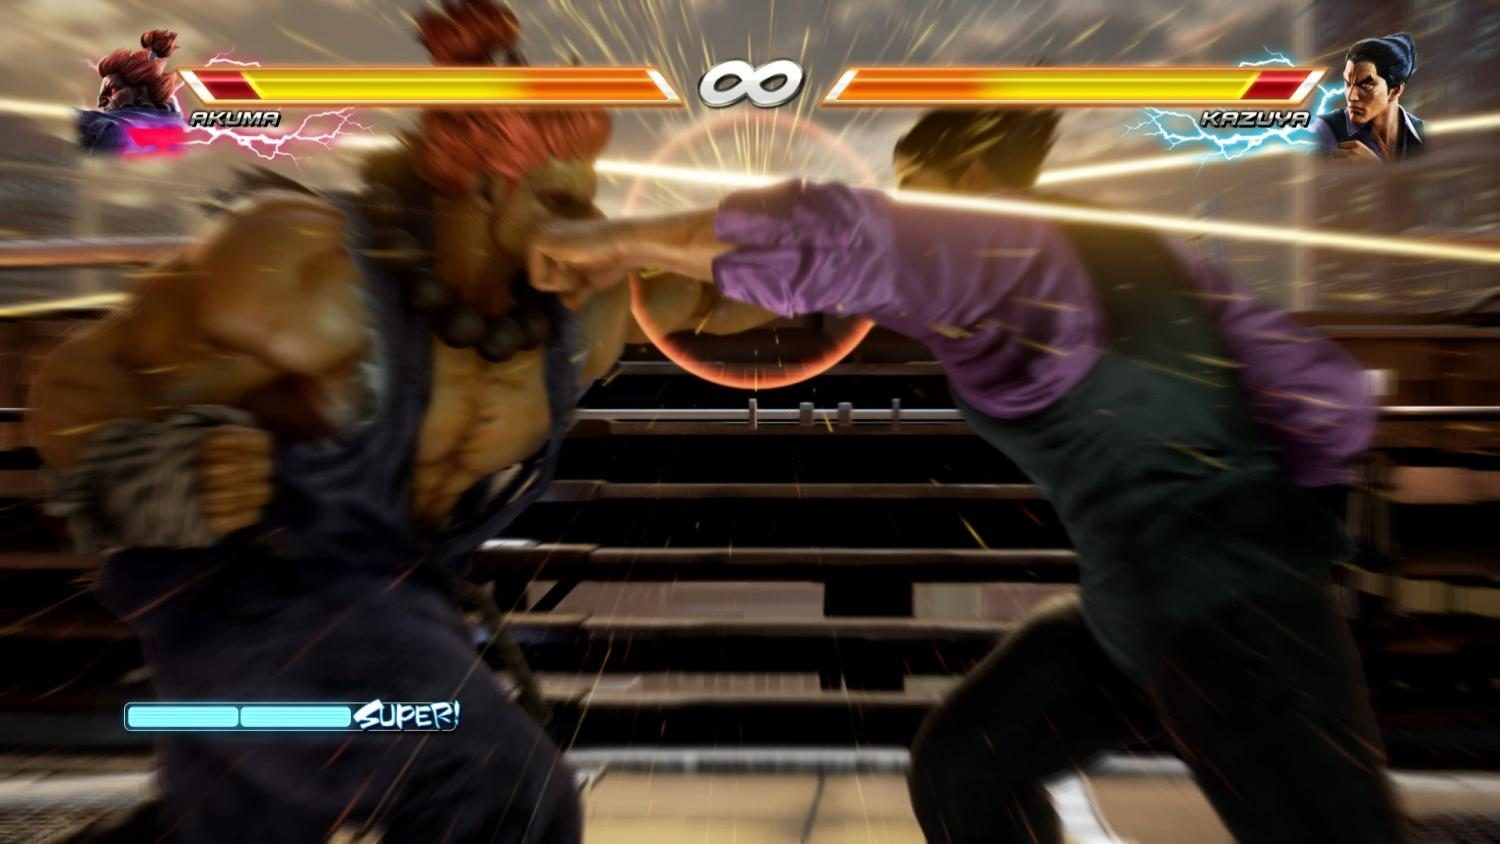 Tekken 7 reigns as the king of fighters – The Orion